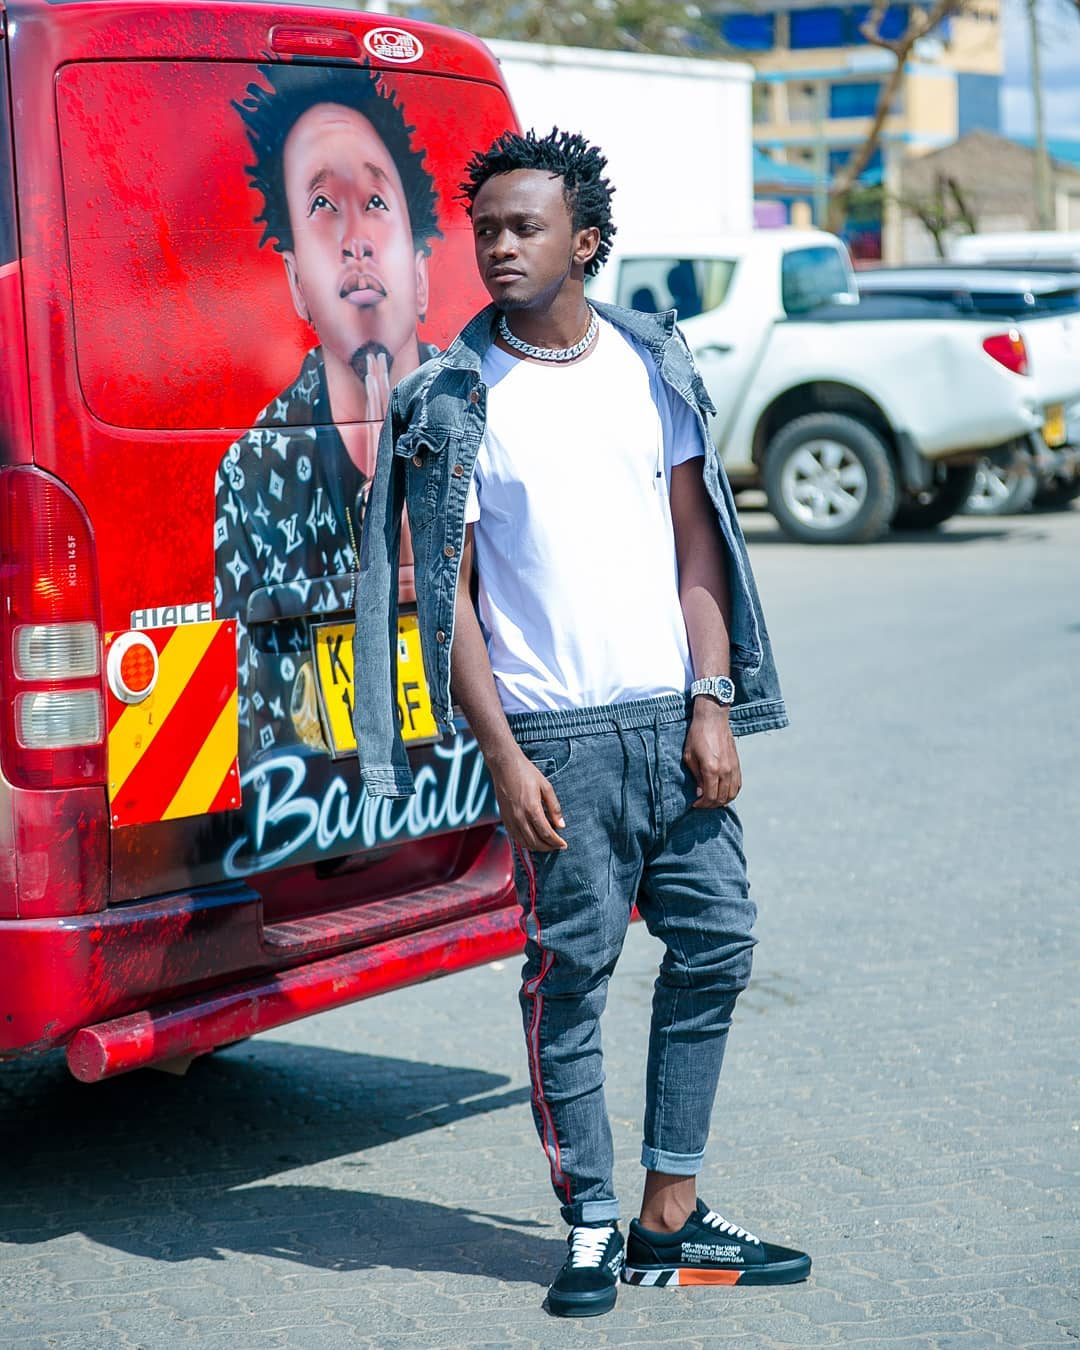 42147393 324498851685889 3107384384115759996 n - 'All that matters is that I love Bahati', Diana Marua tells off ageist critics